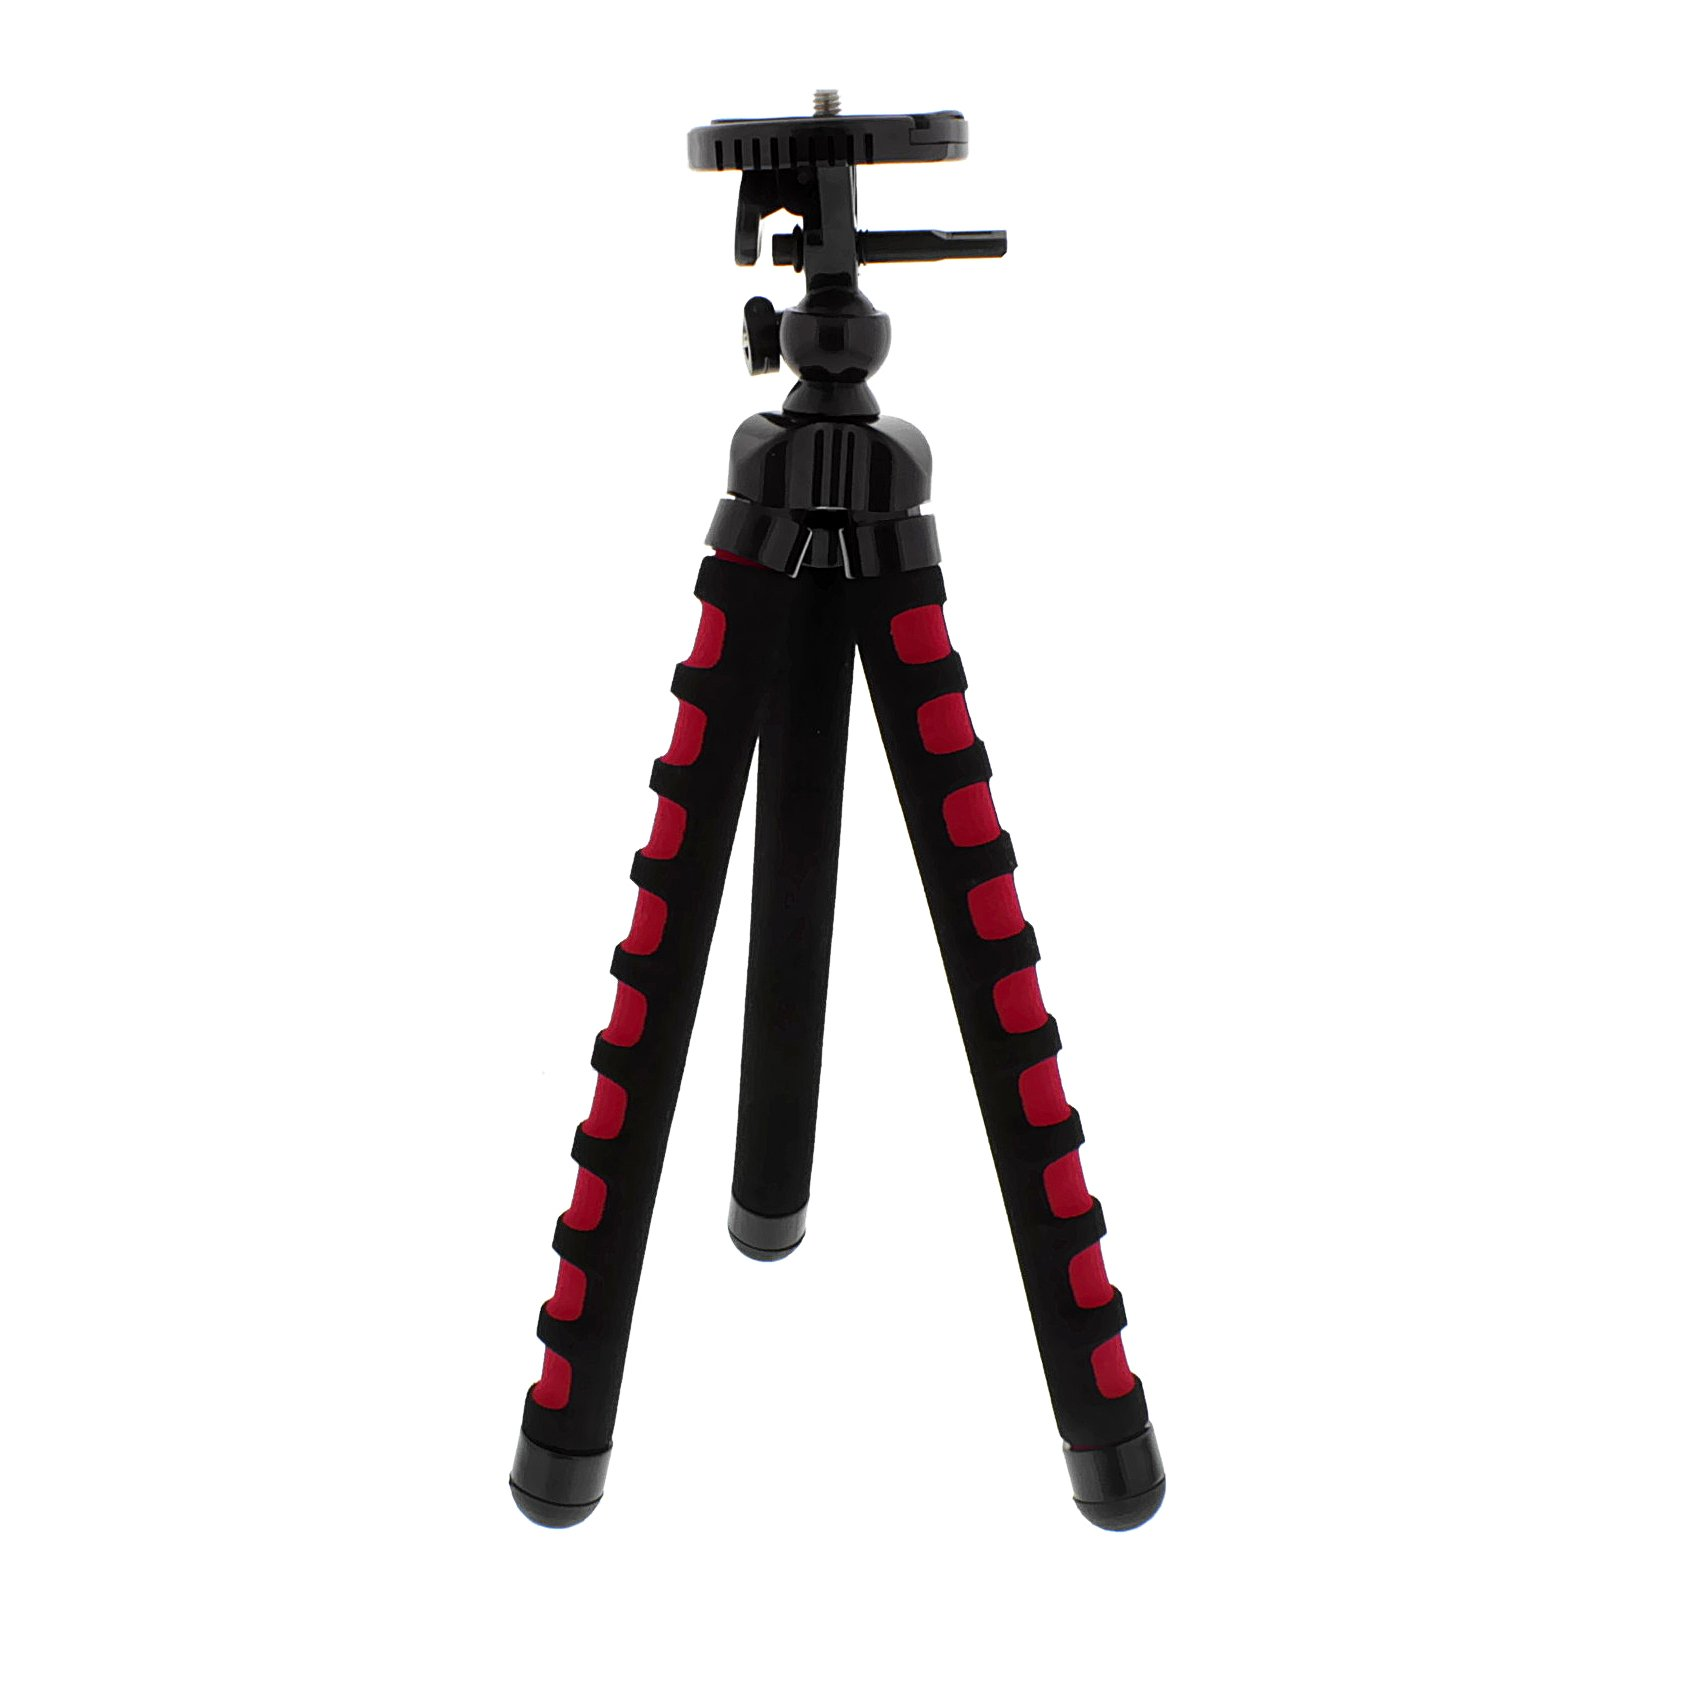 Albinar 11 Inch Large Flexible Bendy Twist Spider Leg and Swivel Light Weight Portable Travel Tripod for Cameras Camcorders Photography